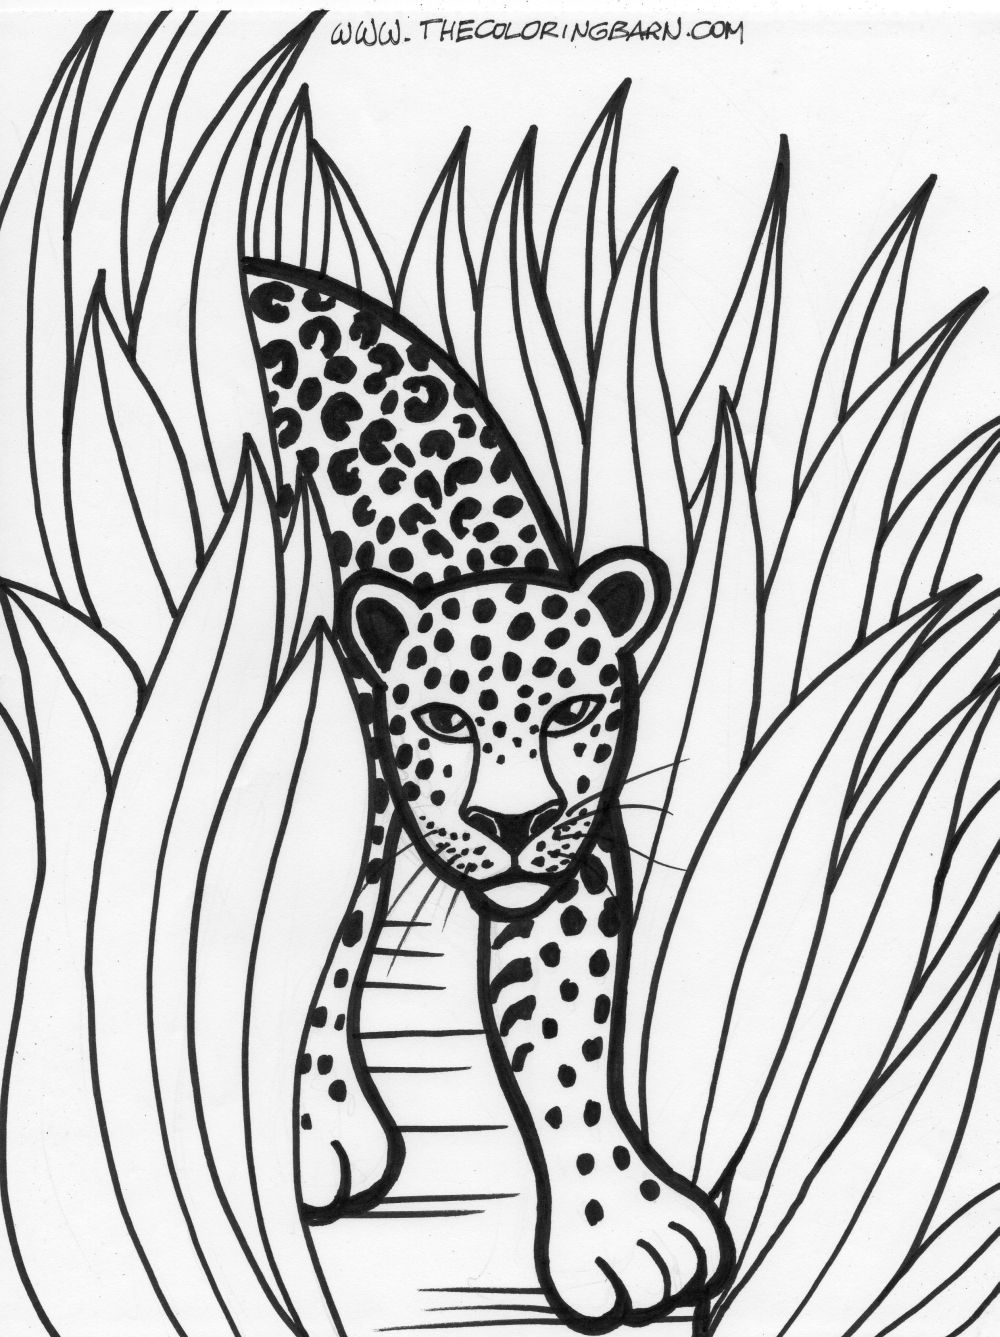 Printable coloring pages jungle animals - Rainforest Printable Coloring Pages The Coloring Barn Printable